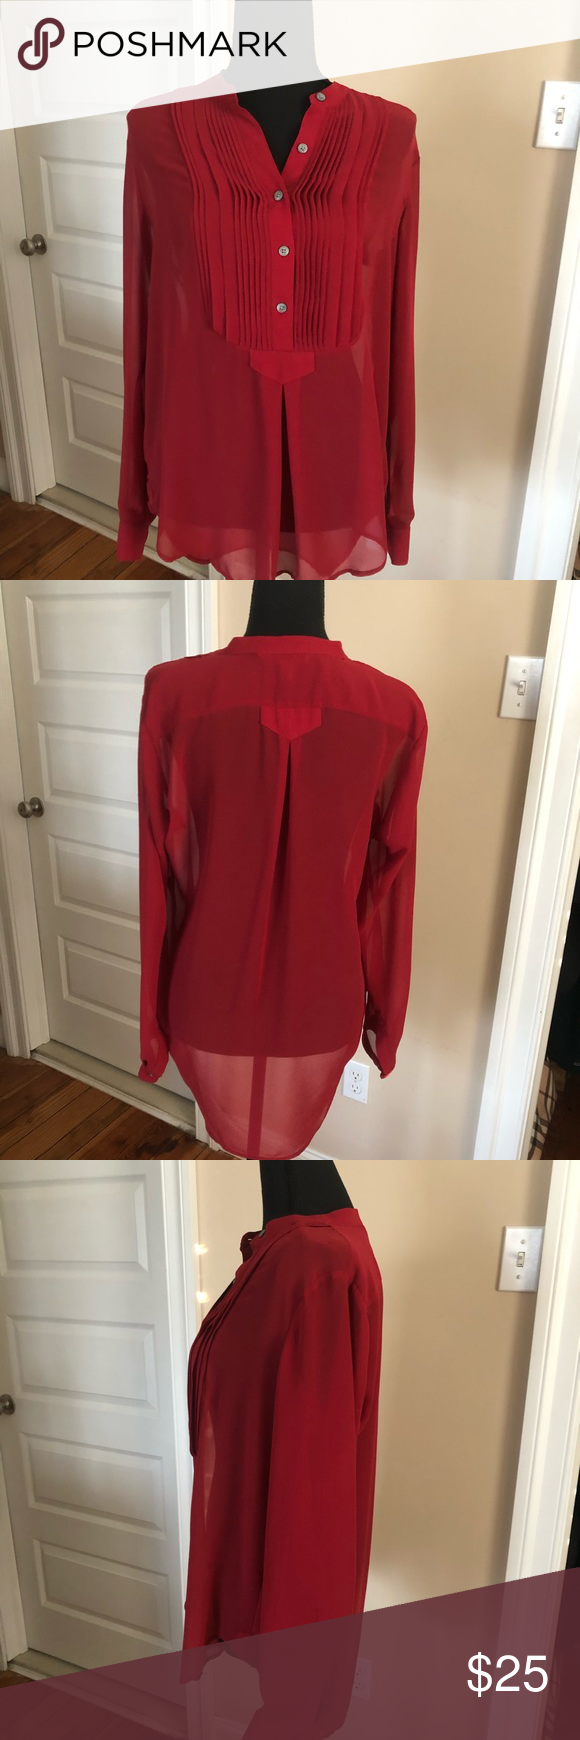 Sheer red Banana Republic blouse Sheer, crimson red, high low Banana Republic blouse.  Longer in back for coverage, and can easily be worn with leggings. Size small.  I always wore with tank under. Banana Republic Tops Blouses